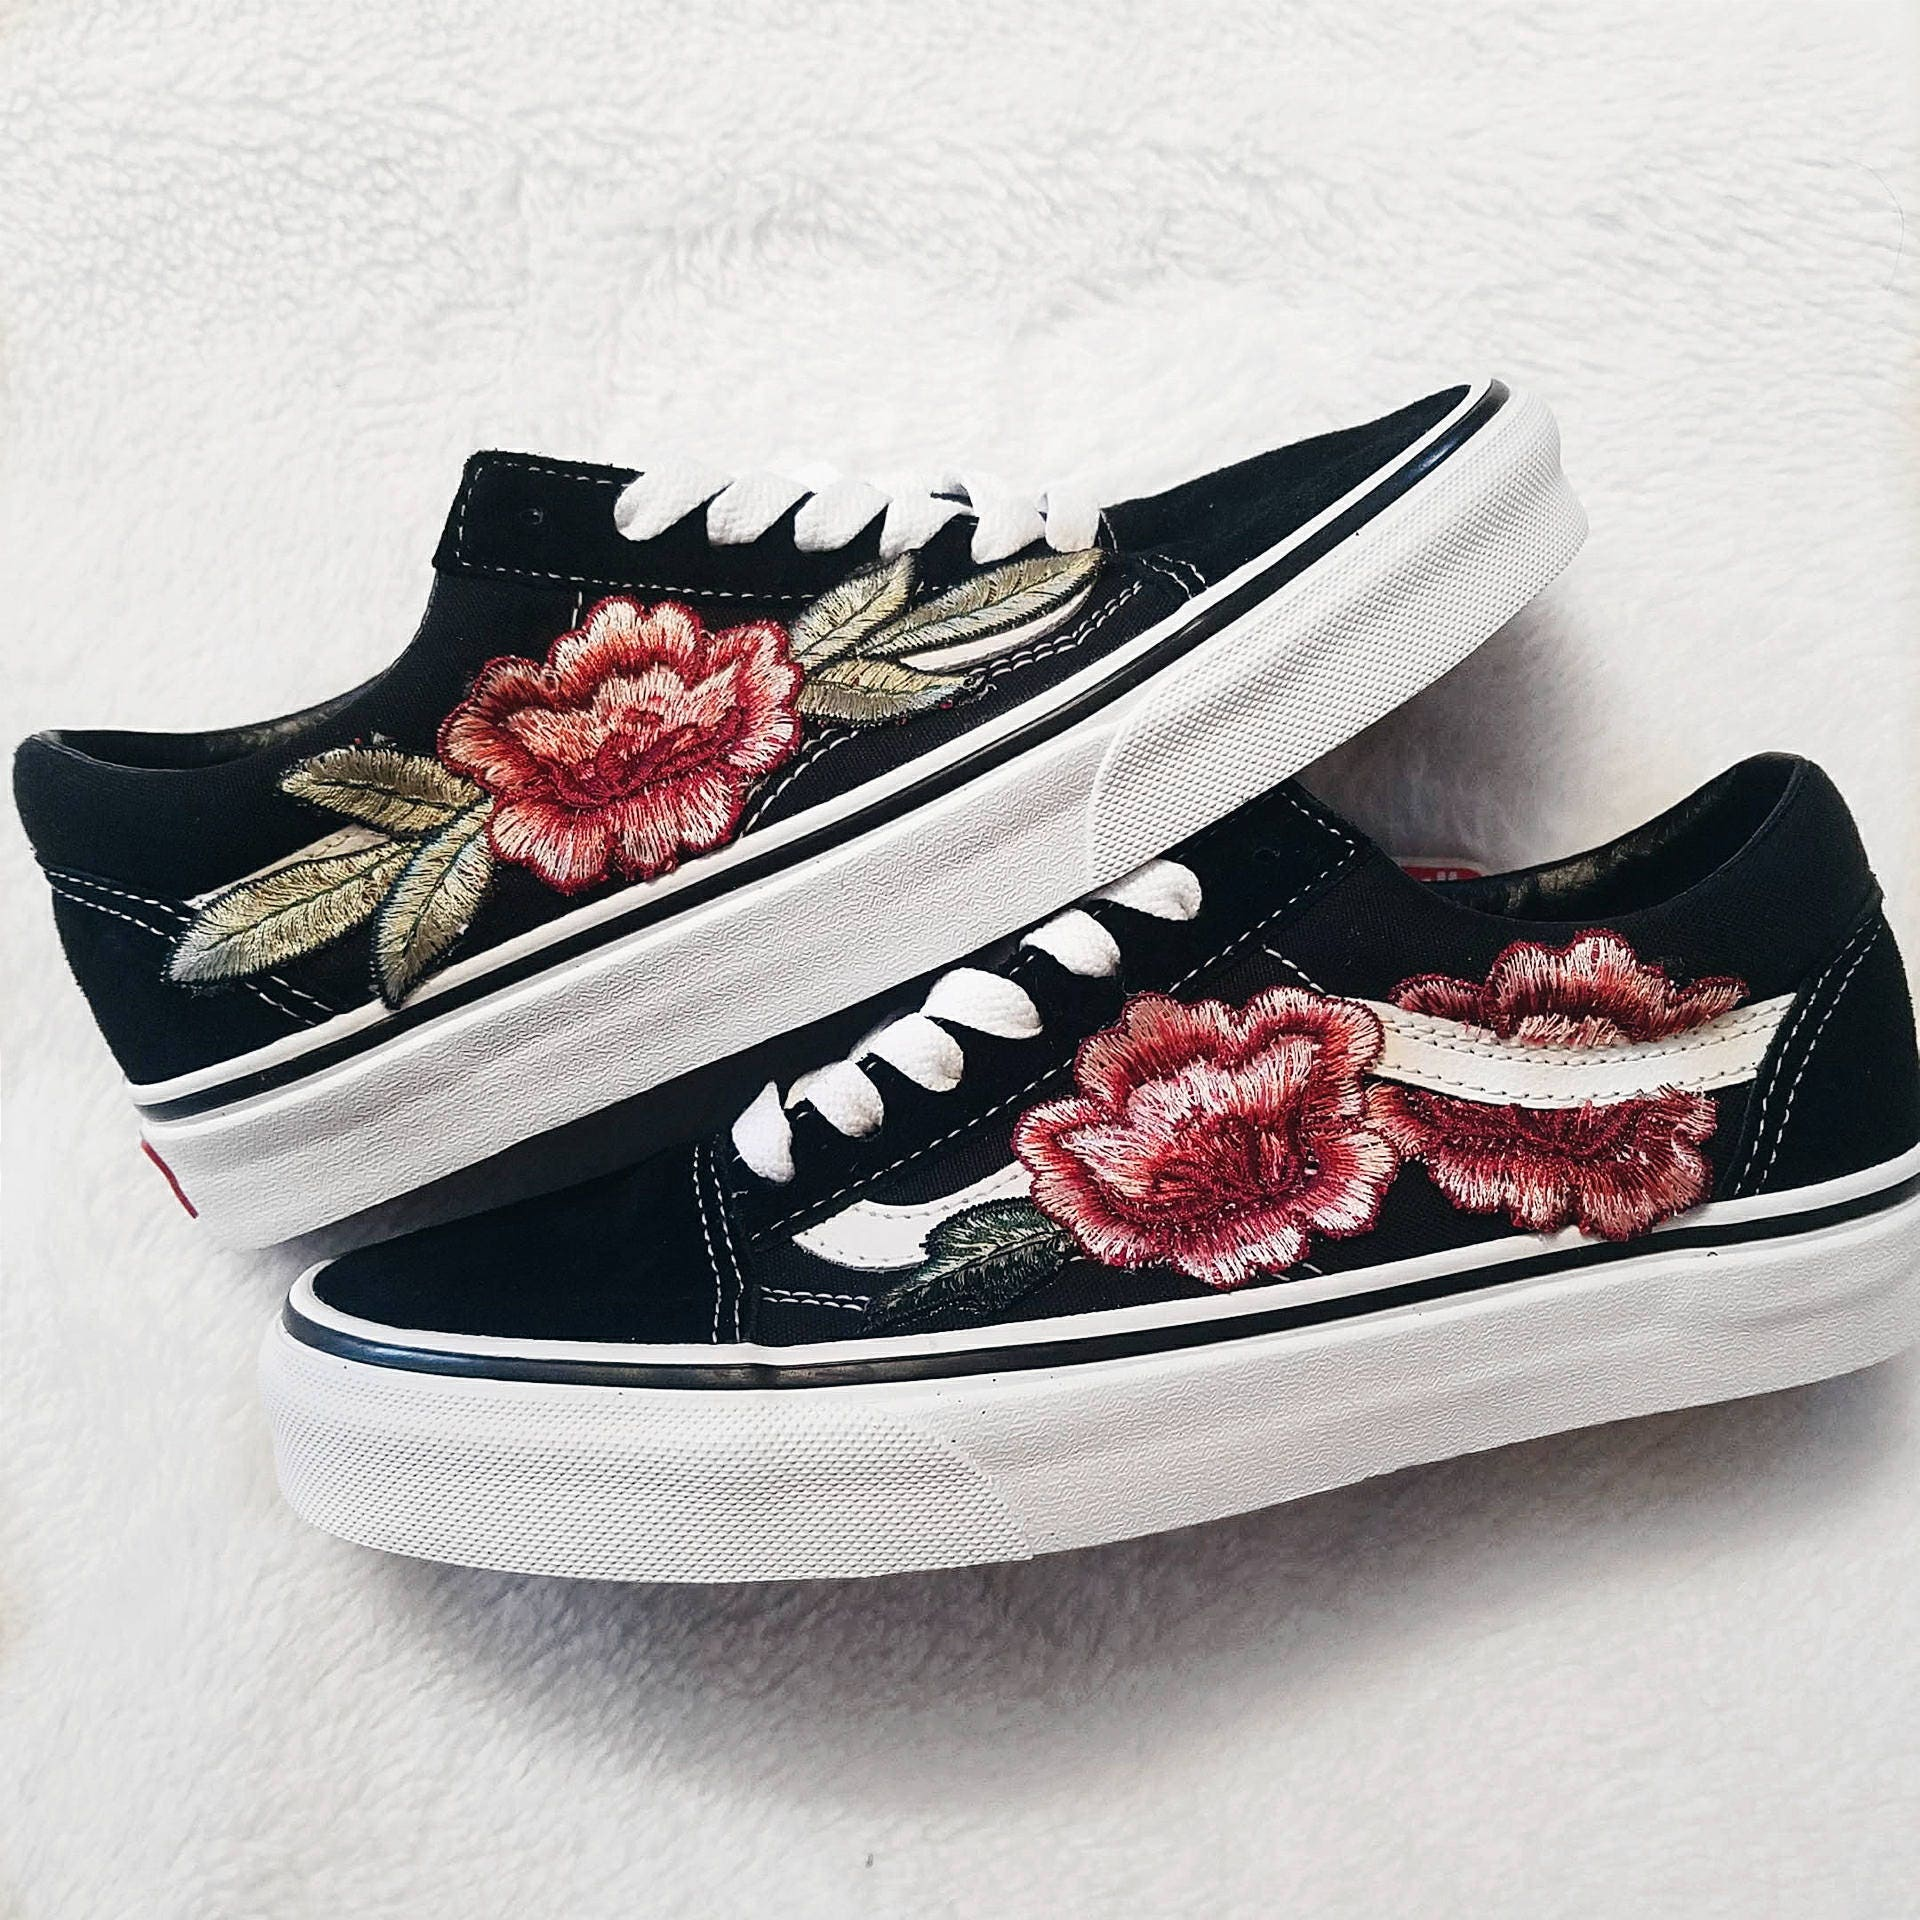 low top unisex custom rose floral embroidered patch vans. Black Bedroom Furniture Sets. Home Design Ideas